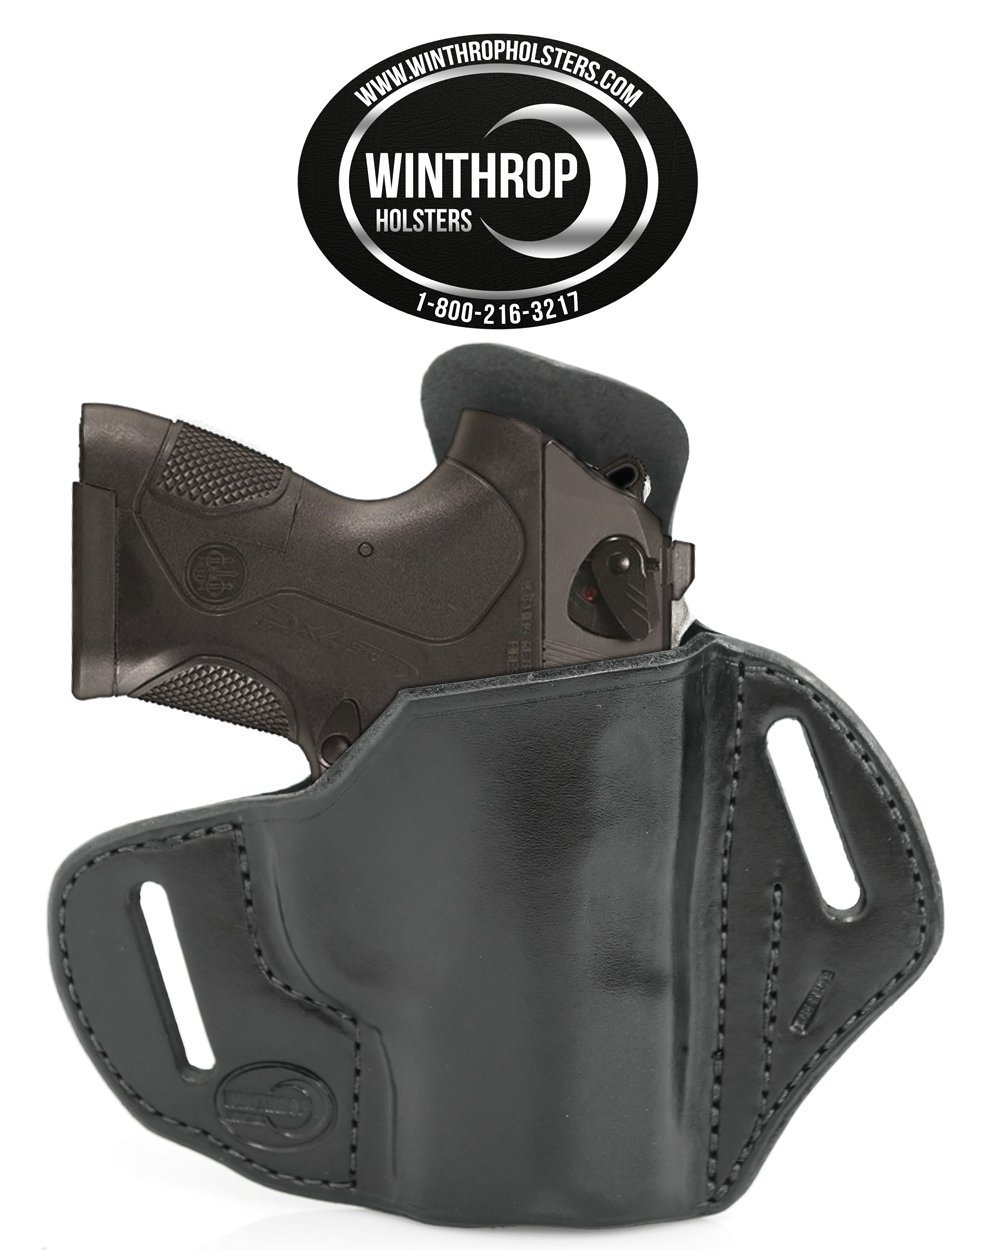 Cheap Px4 Compact Holster, find Px4 Compact Holster deals on